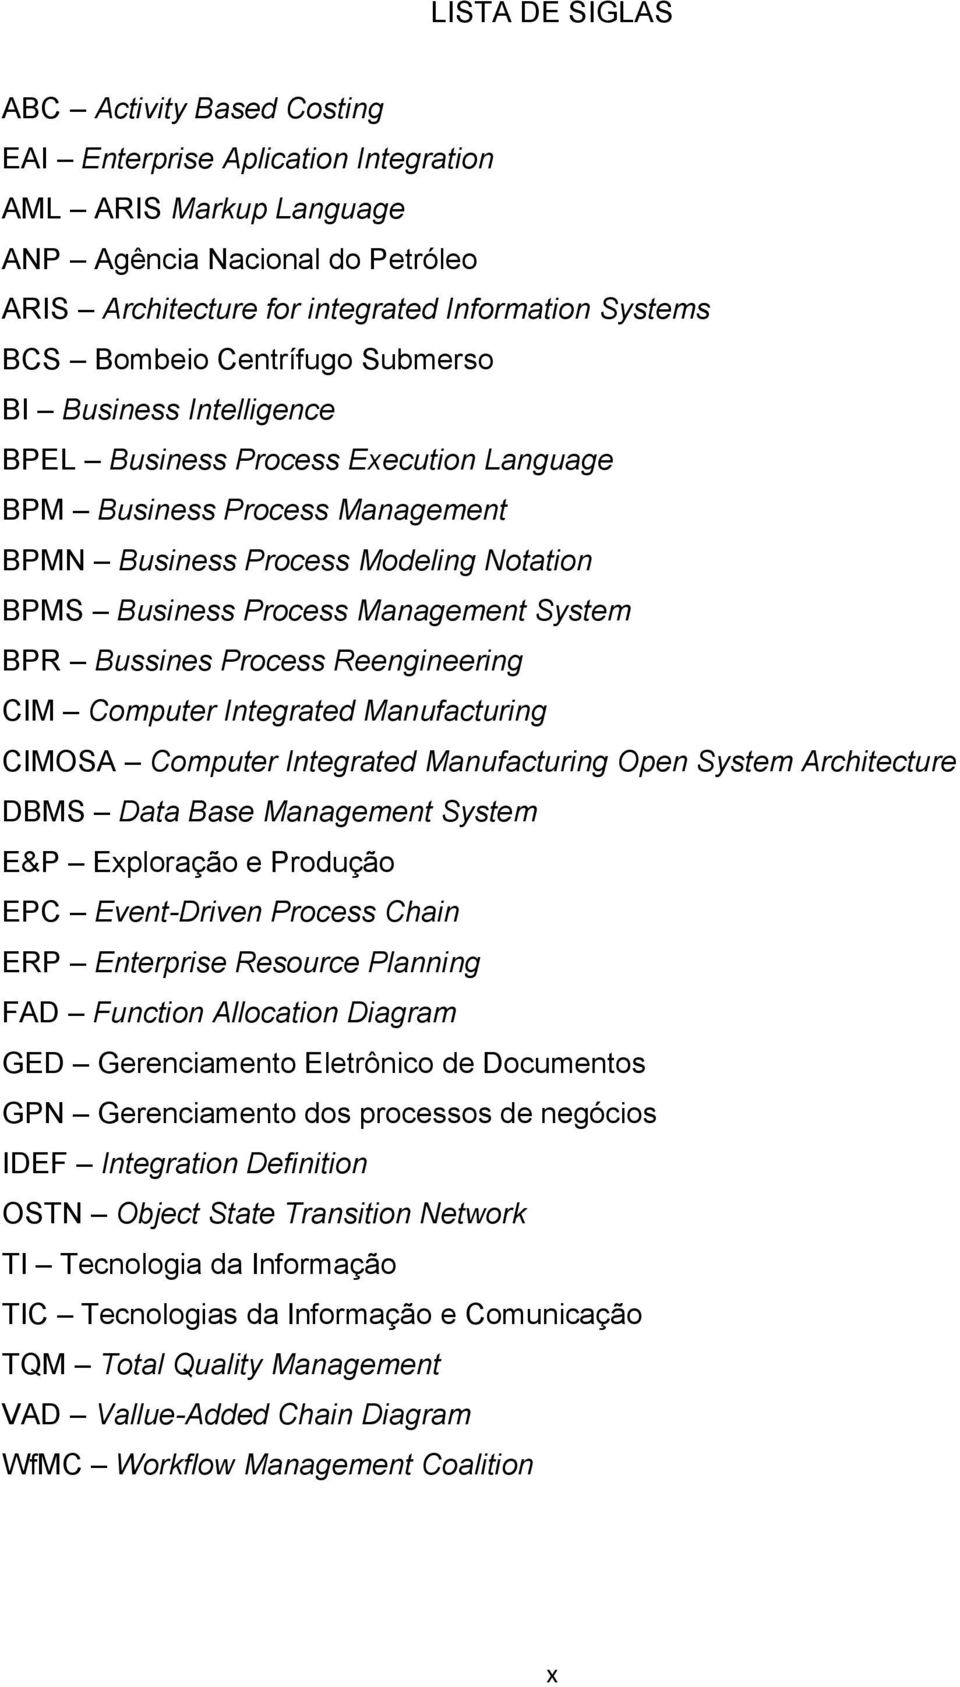 System BPR Bussines Process Reengineering CIM Computer Integrated Manufacturing CIMOSA Computer Integrated Manufacturing Open System Architecture DBMS Data Base Management System E&P Exploração e